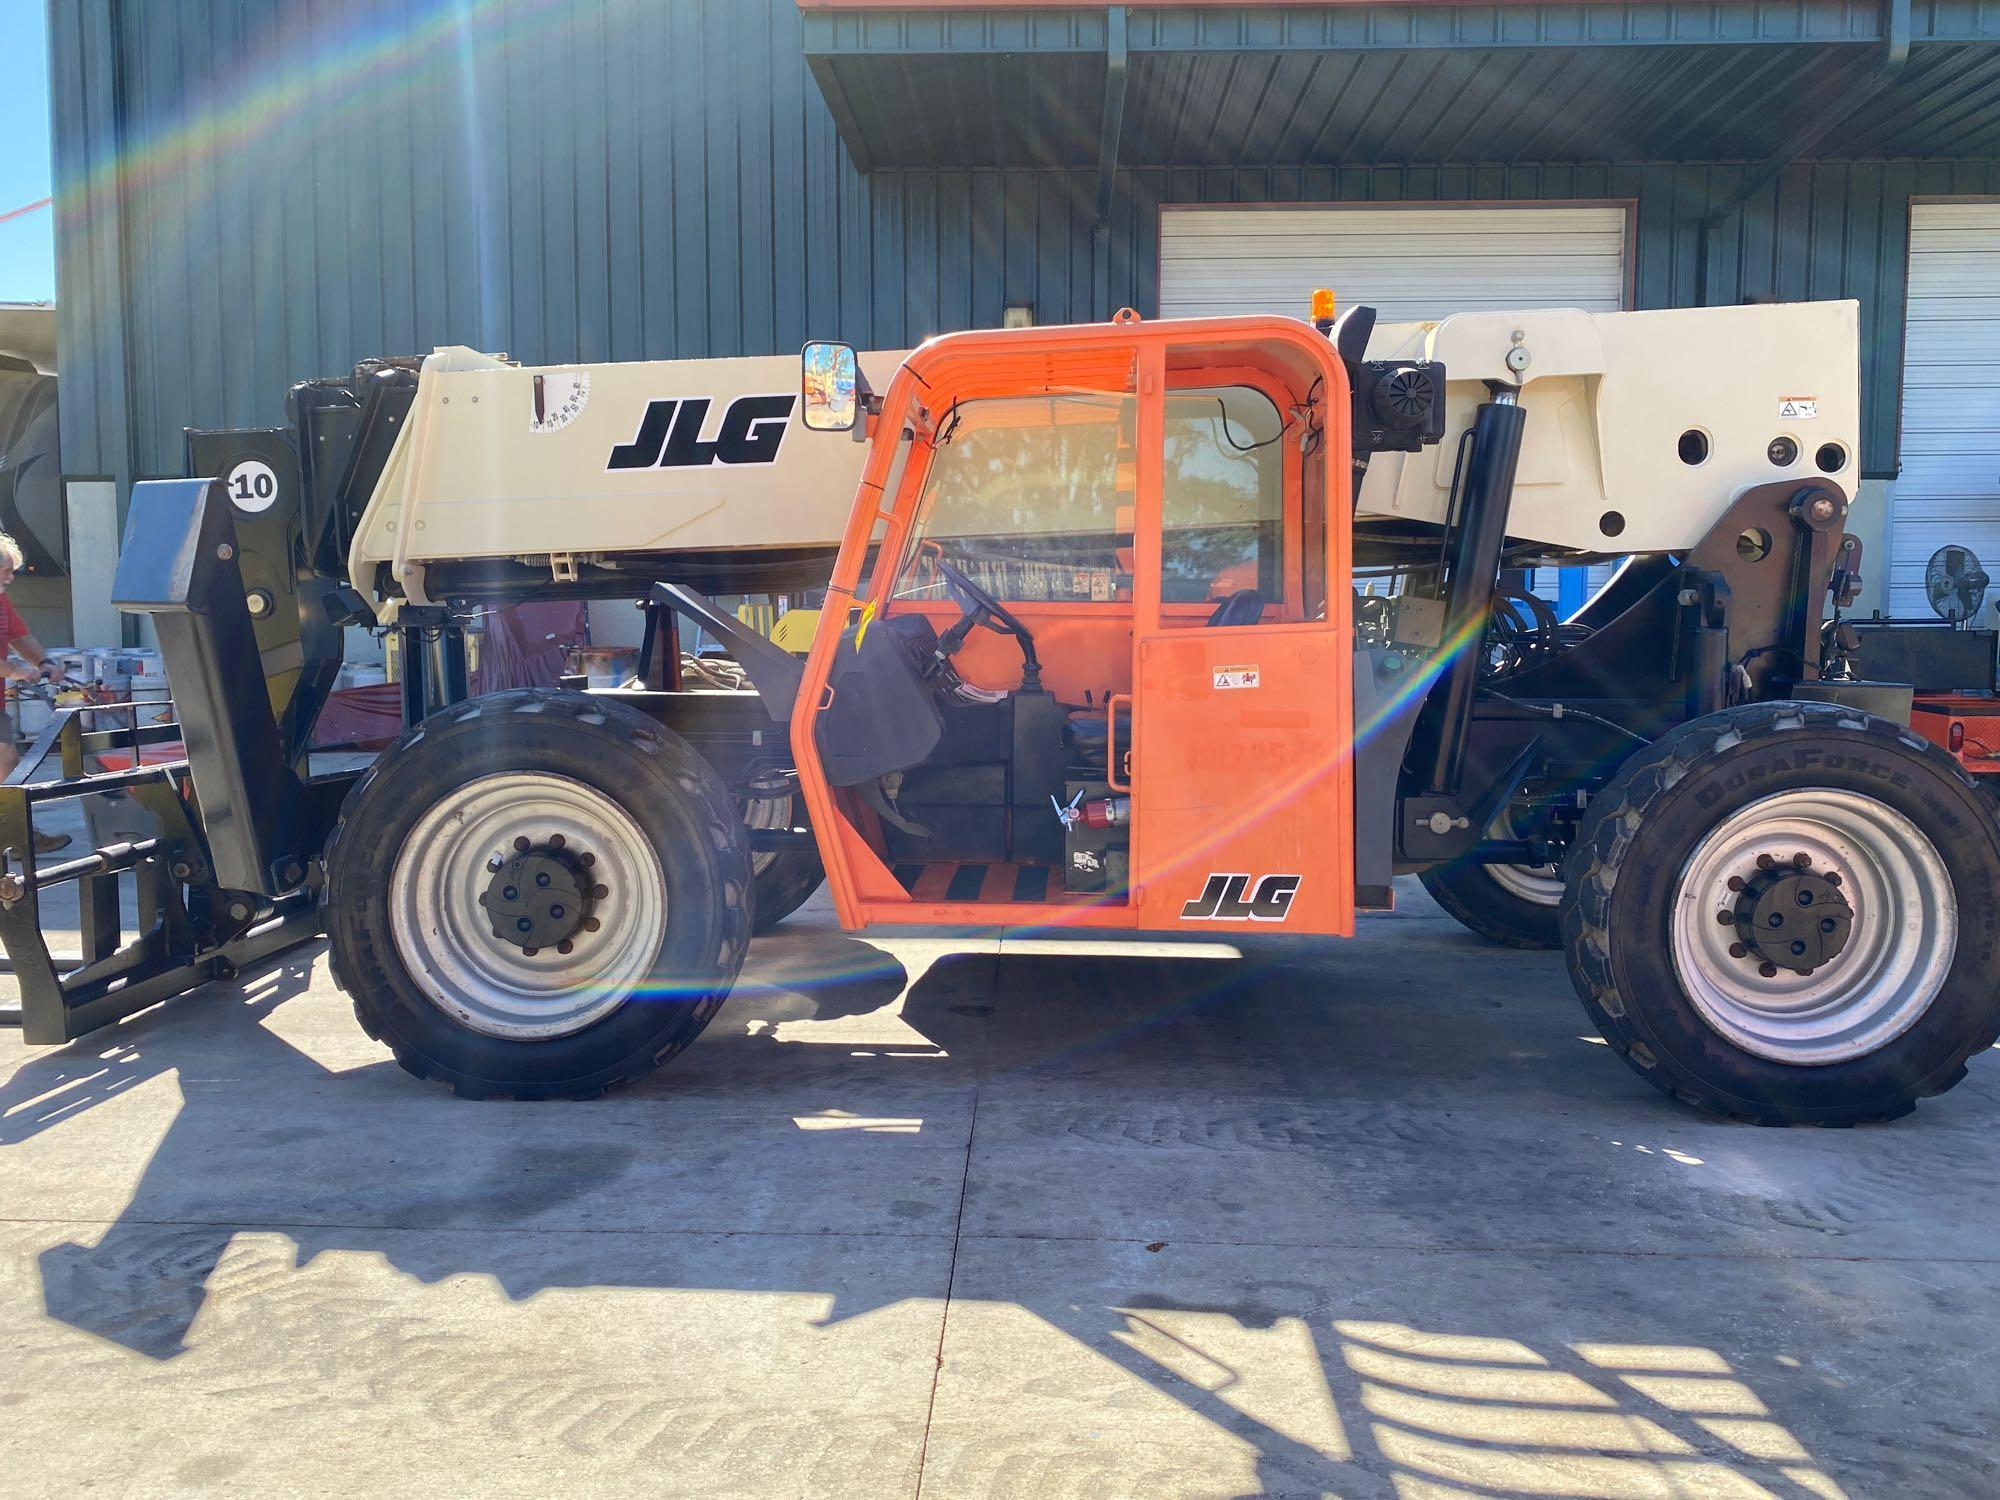 2013 JLG TELESCOPIC FORKLIFT MODEL G10-55A, 10,000 LB CAPACITY, OUTRIGGERS, 5,717.7 HOURS SHOWING, C - Image 10 of 16